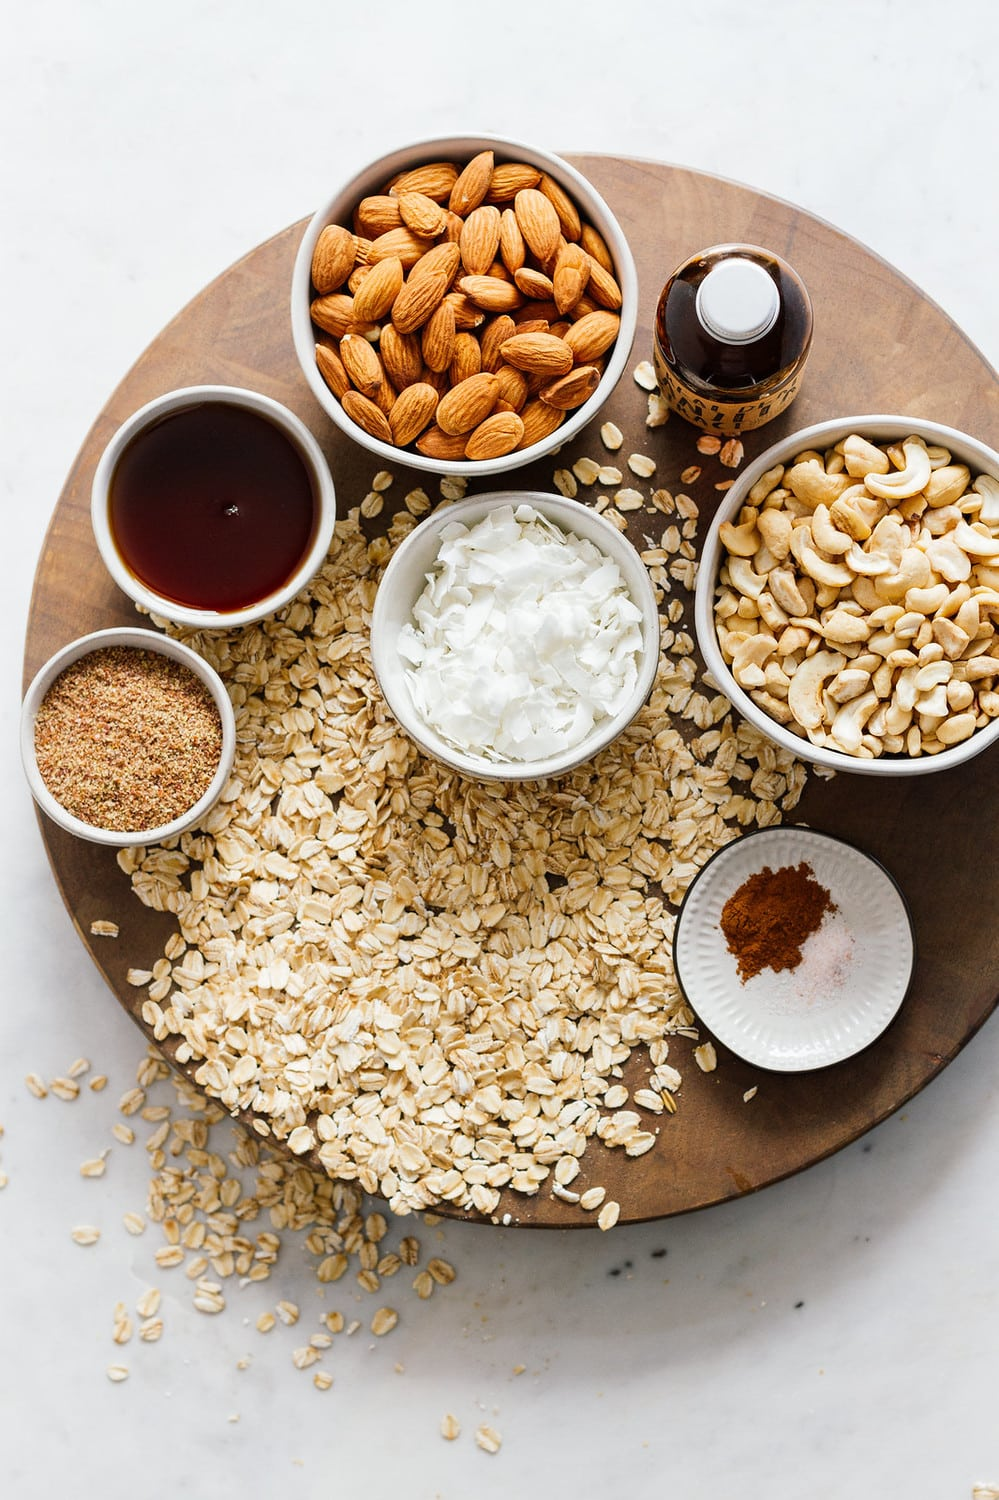 ingredients for granola on a wooden board